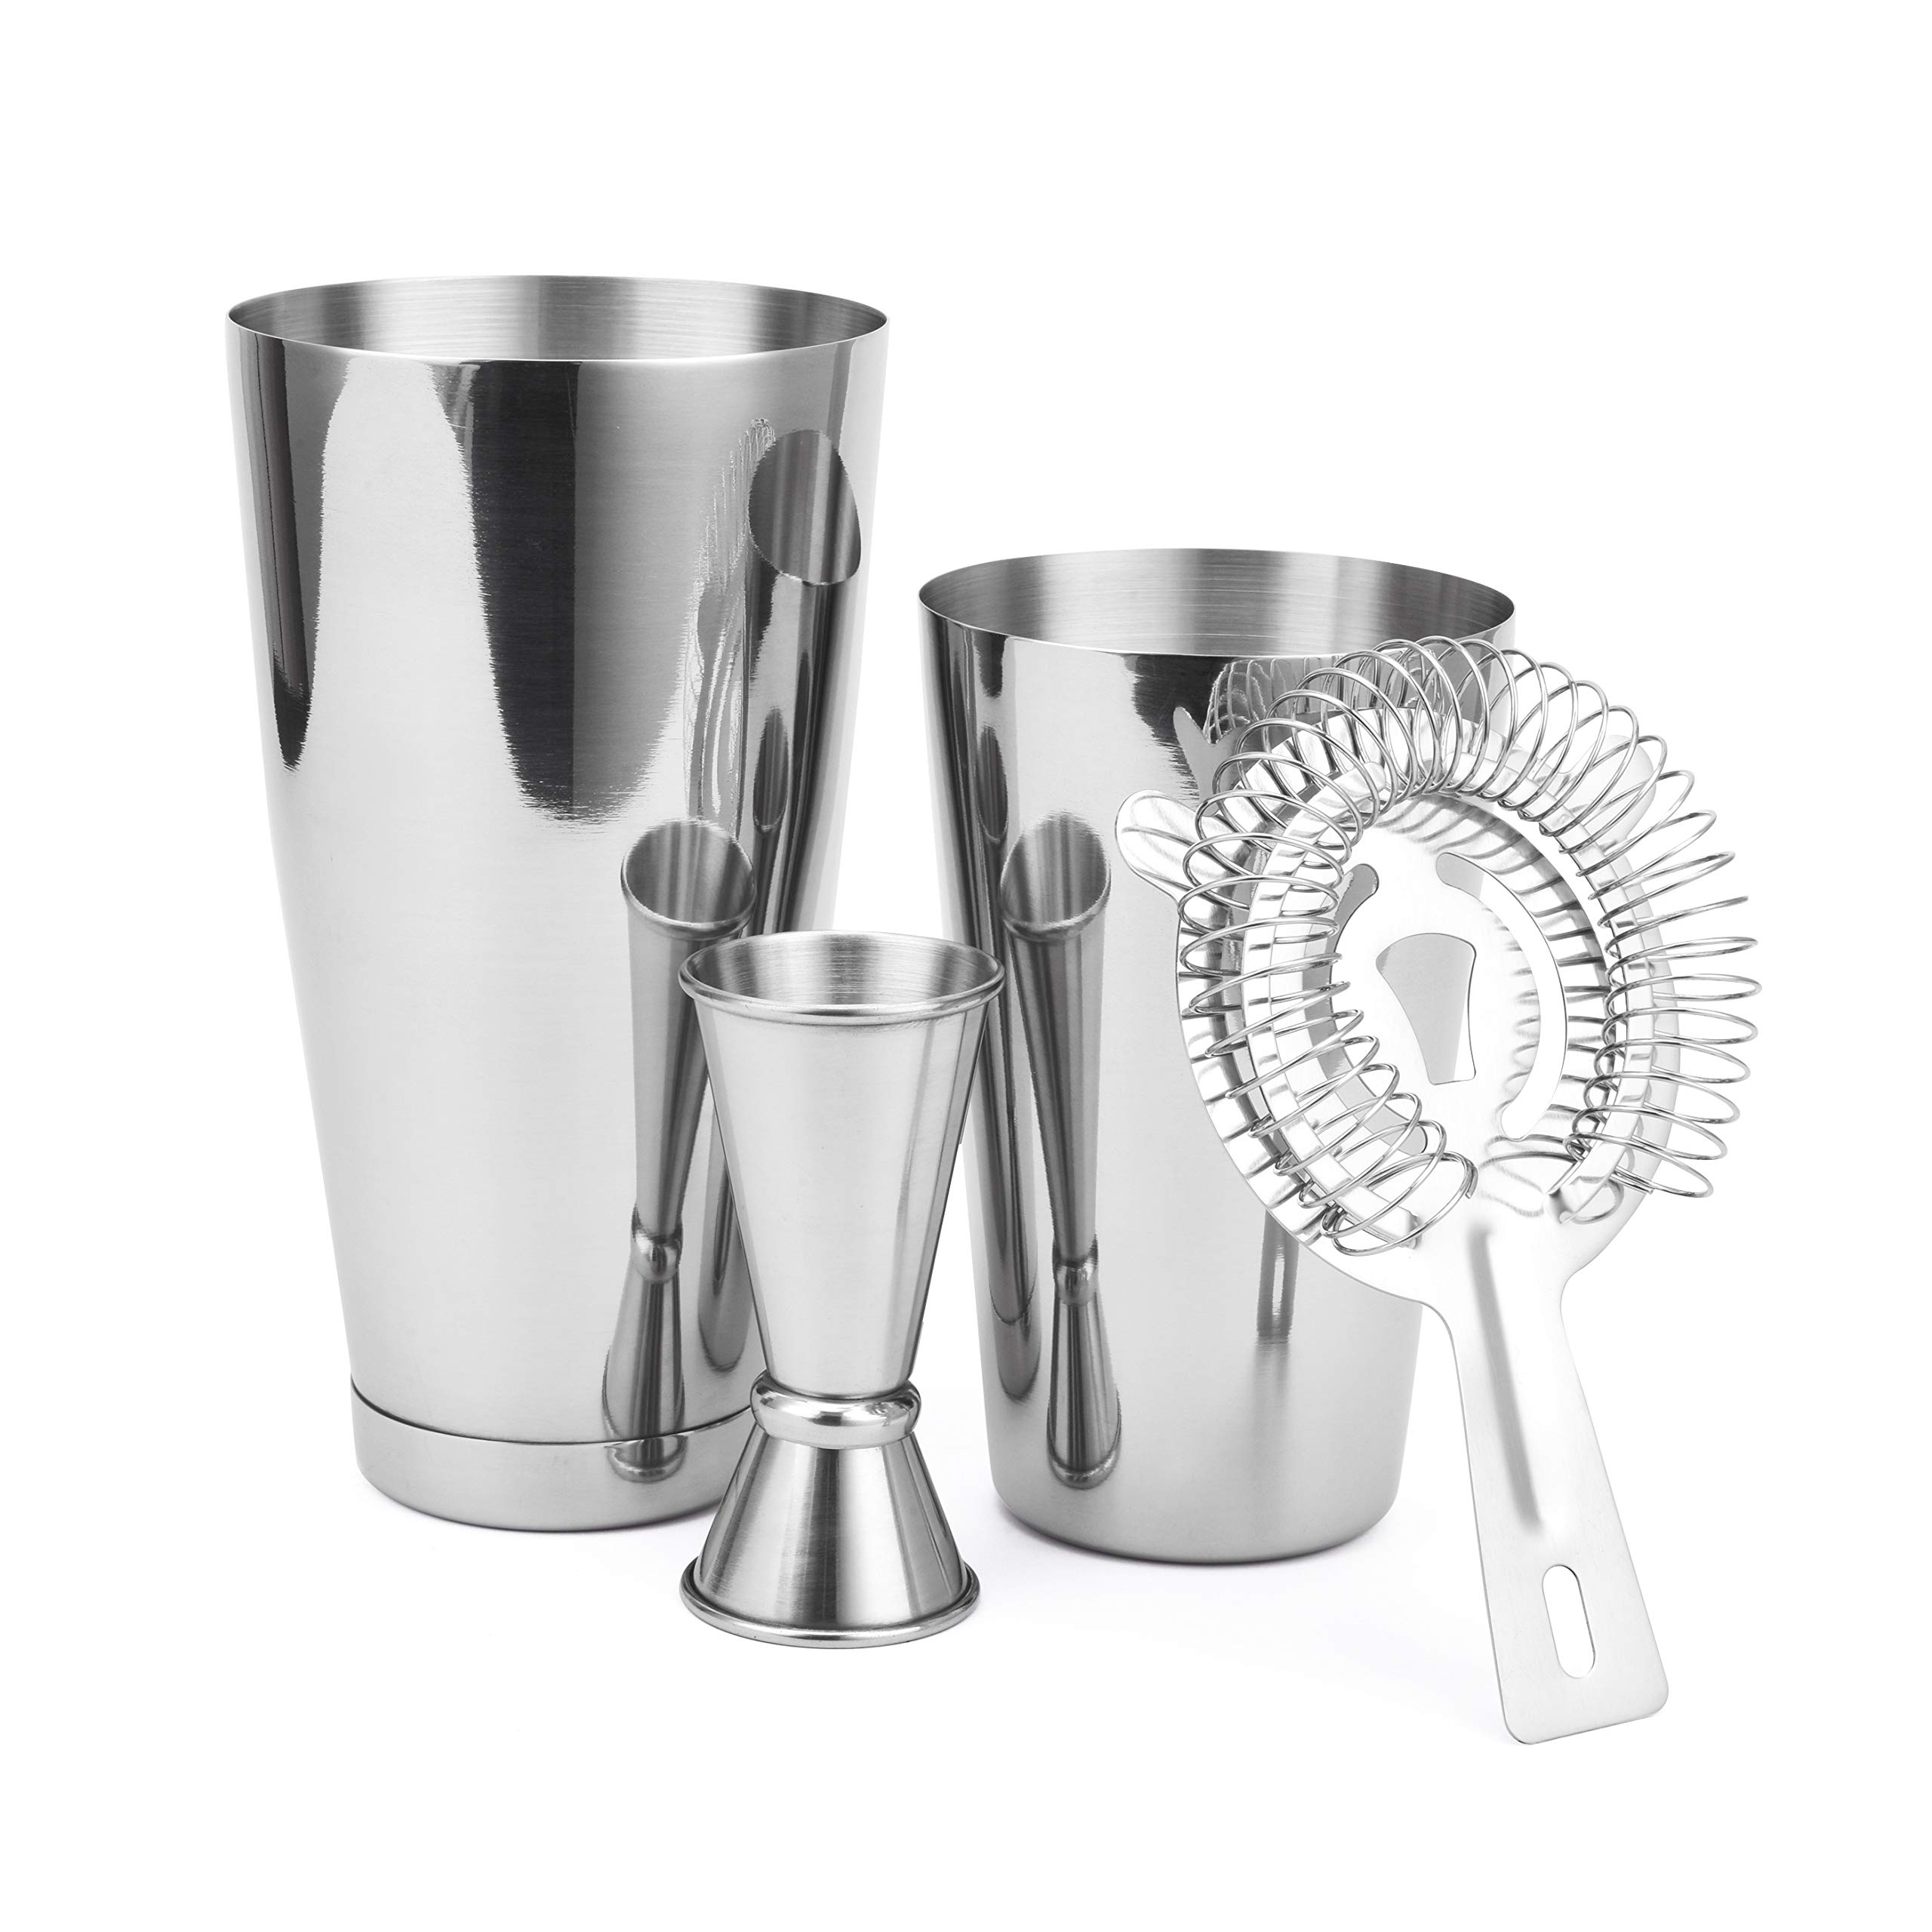 Boston Shaker 4 Piece Cocktail Making Set: 18oz Unweighted & 28oz Weighted Professional Bartender Cocktail Shaker Set with Double Jigger and Hawthorne Strainer/Cocktail Recipe Booklet by Cresimo